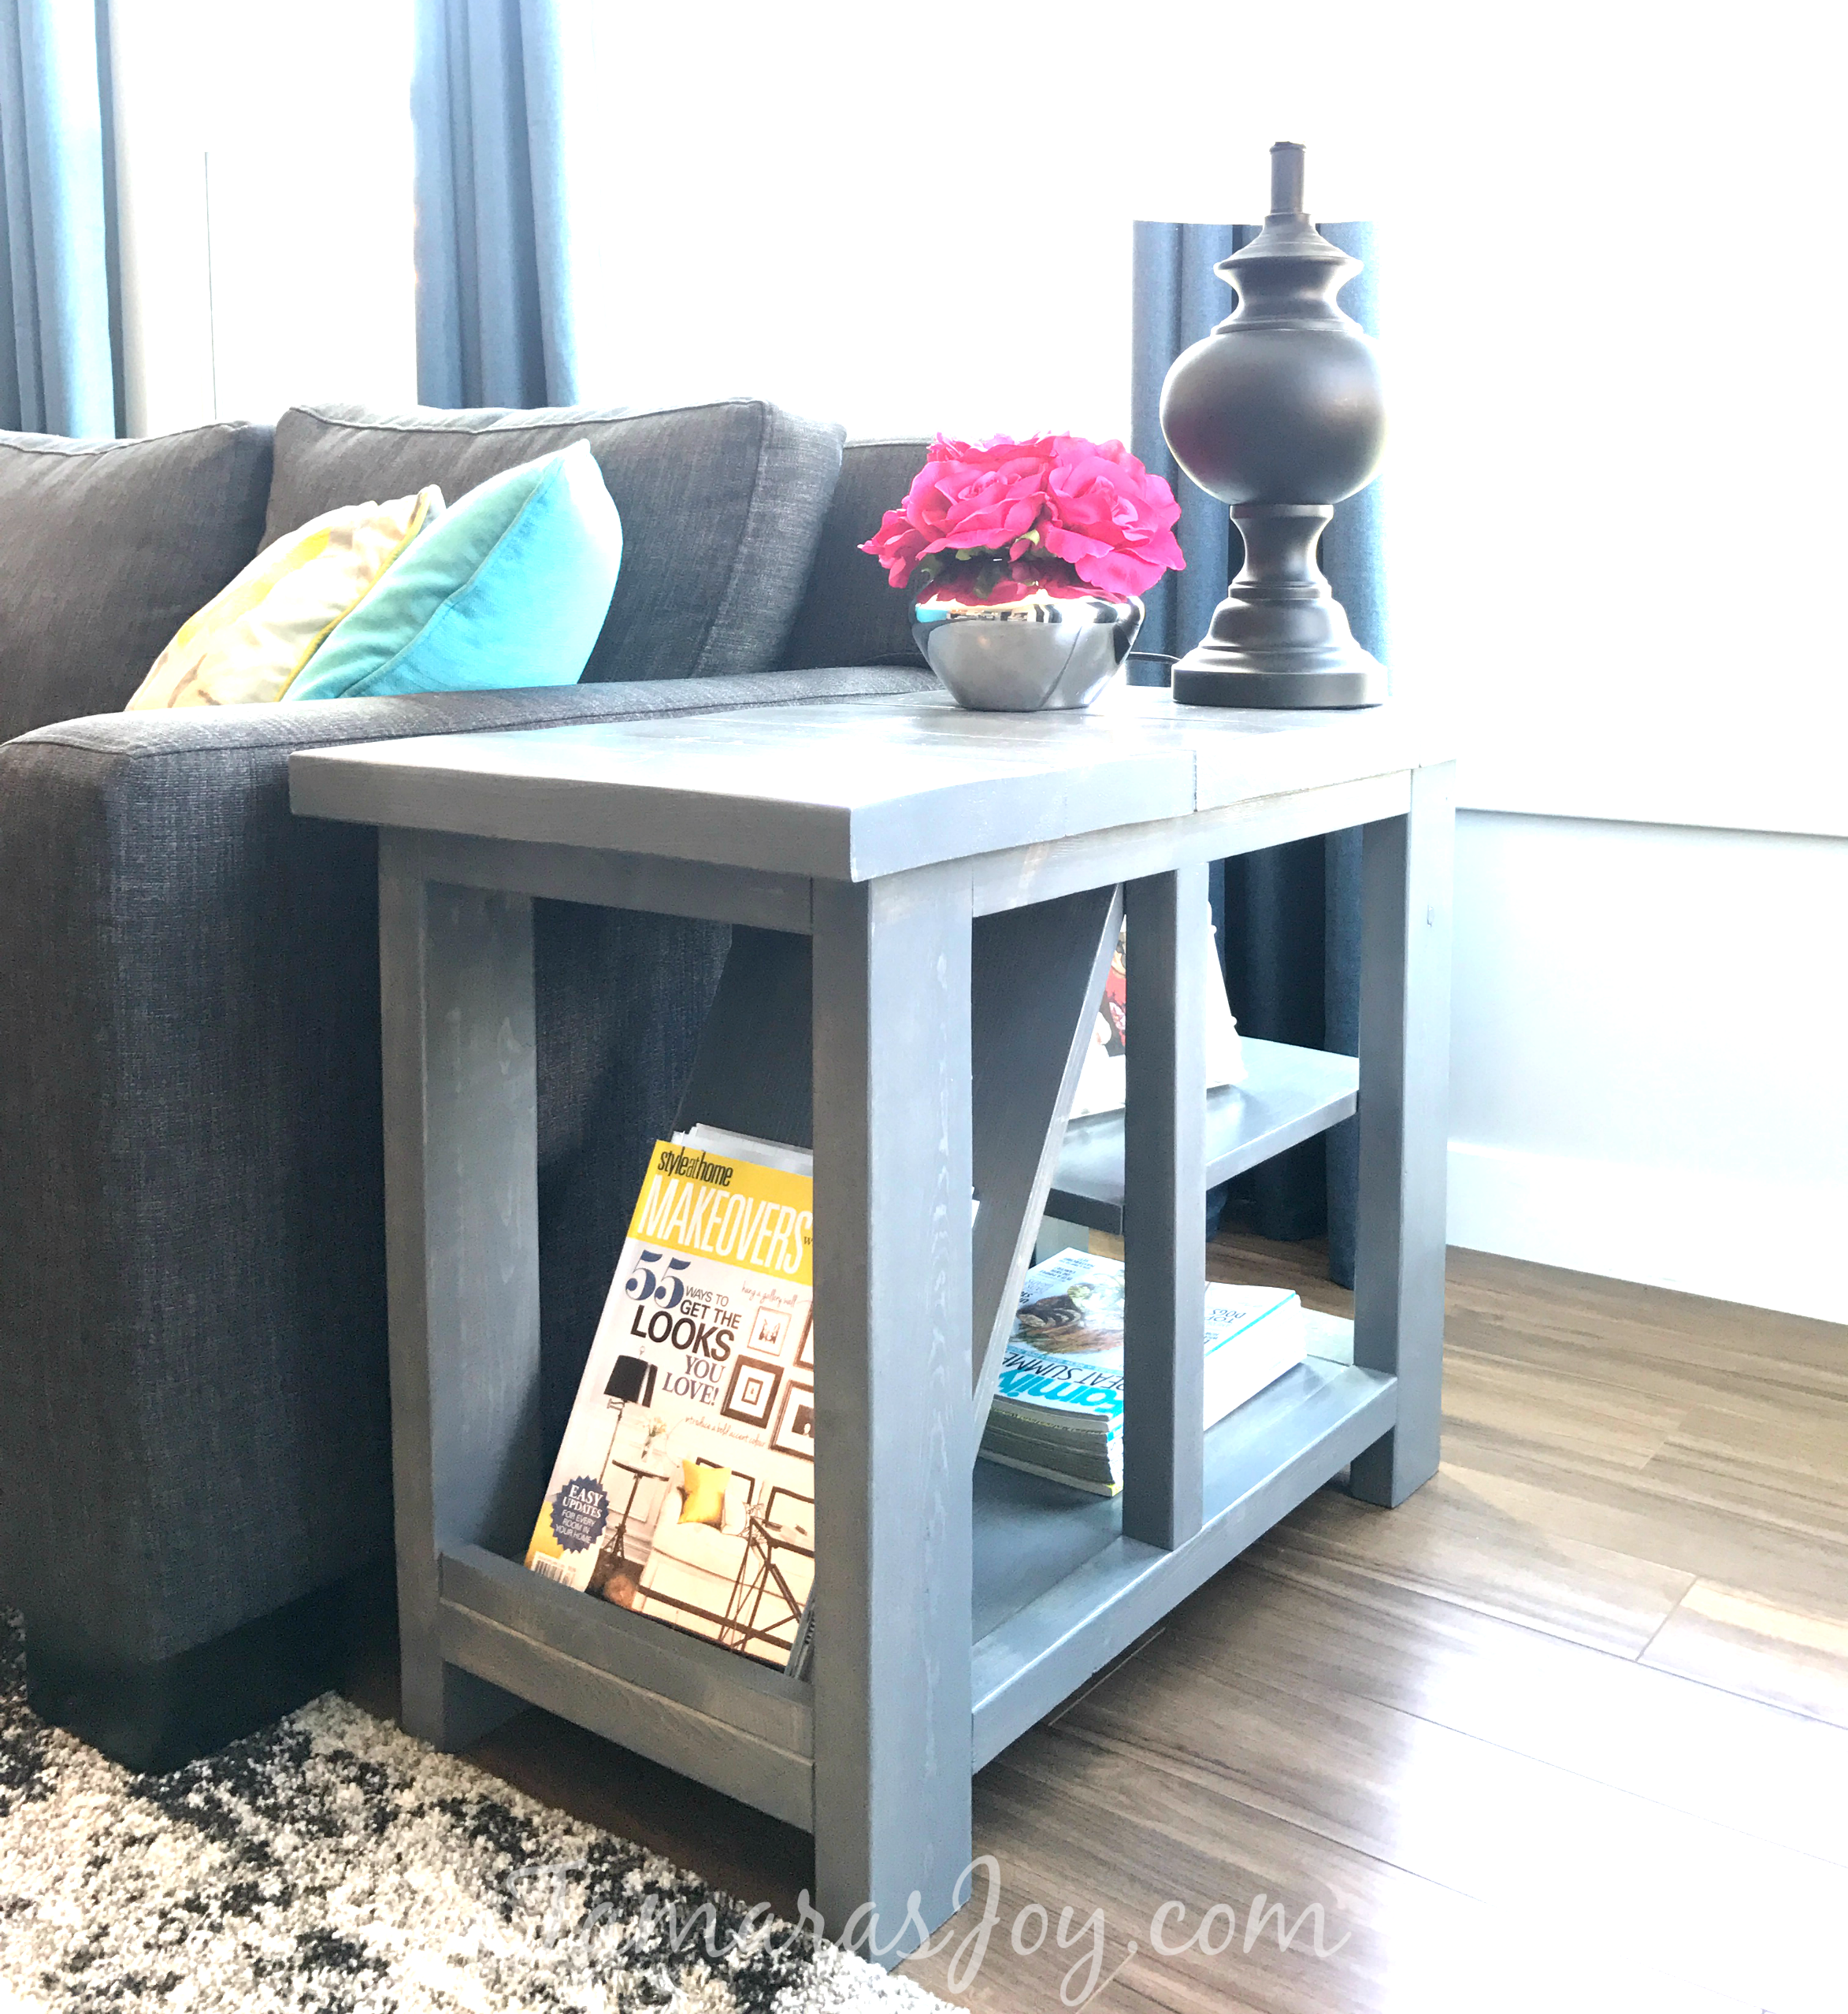 Diy Rustic Side Table With Free Plans Tamara 39 S Joy